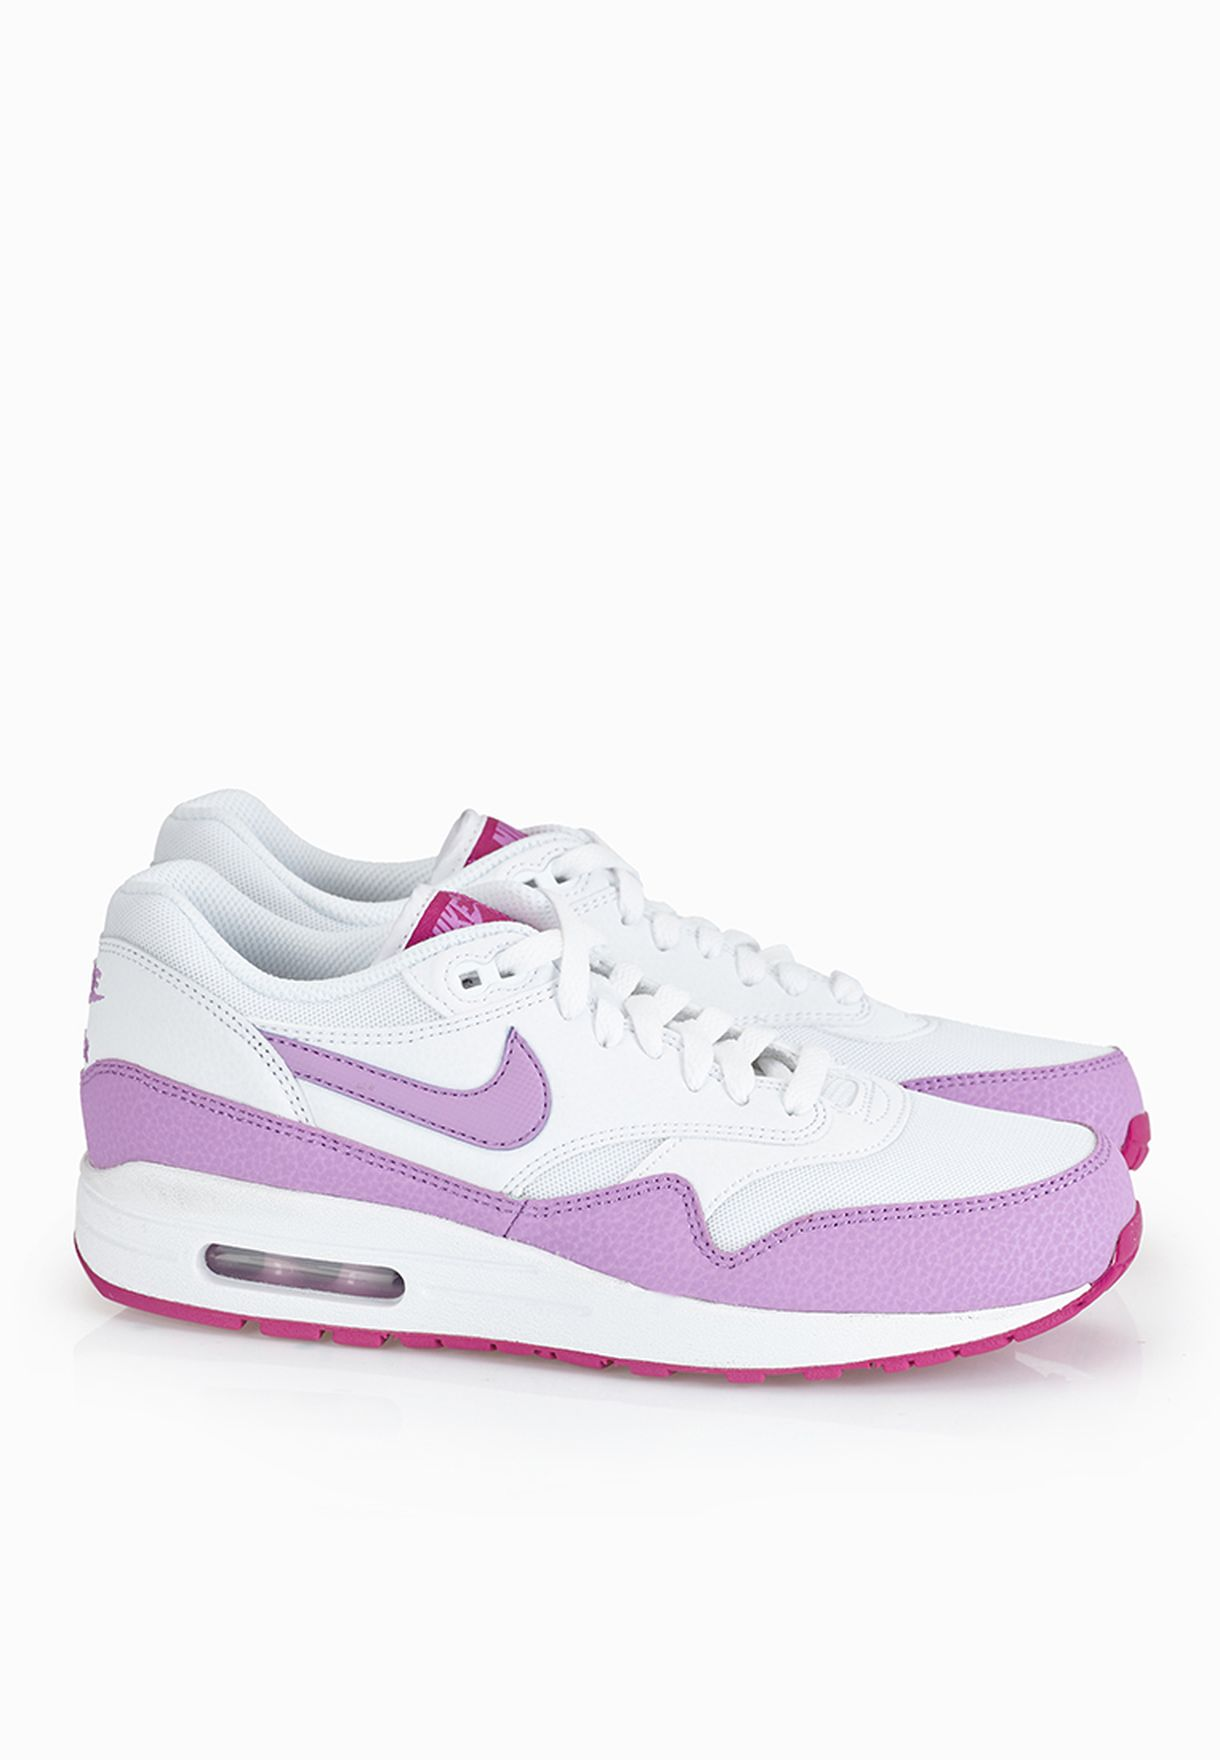 best service 9c117 9bb1f ... cheapest air max 1 essential sneakers f16f7 3953c